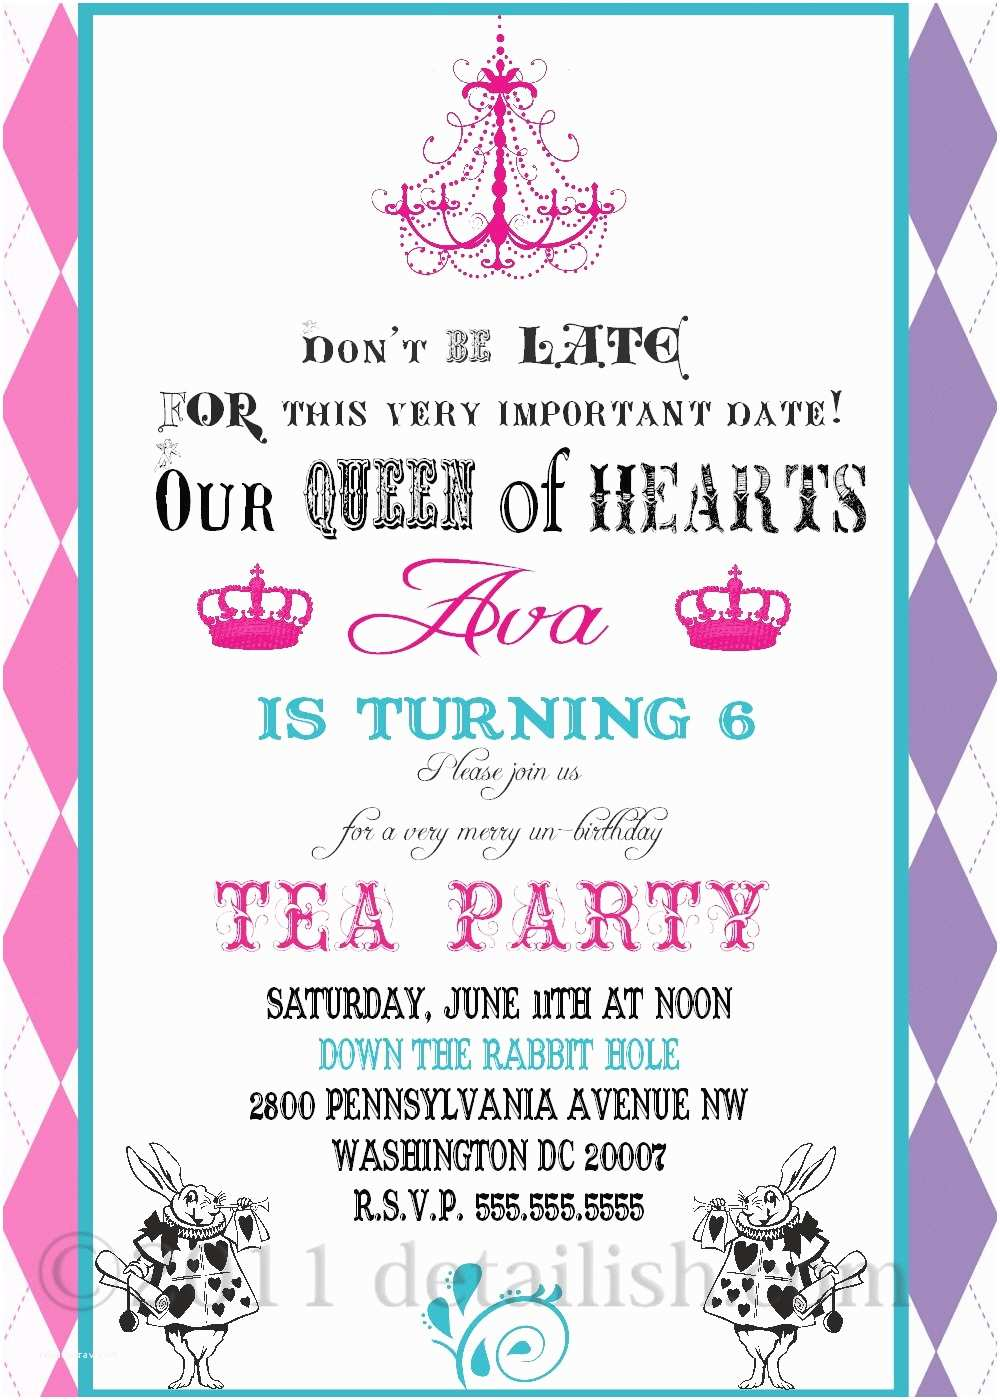 Corporate Party Invitation Wording Ideas Party Invitations Wording